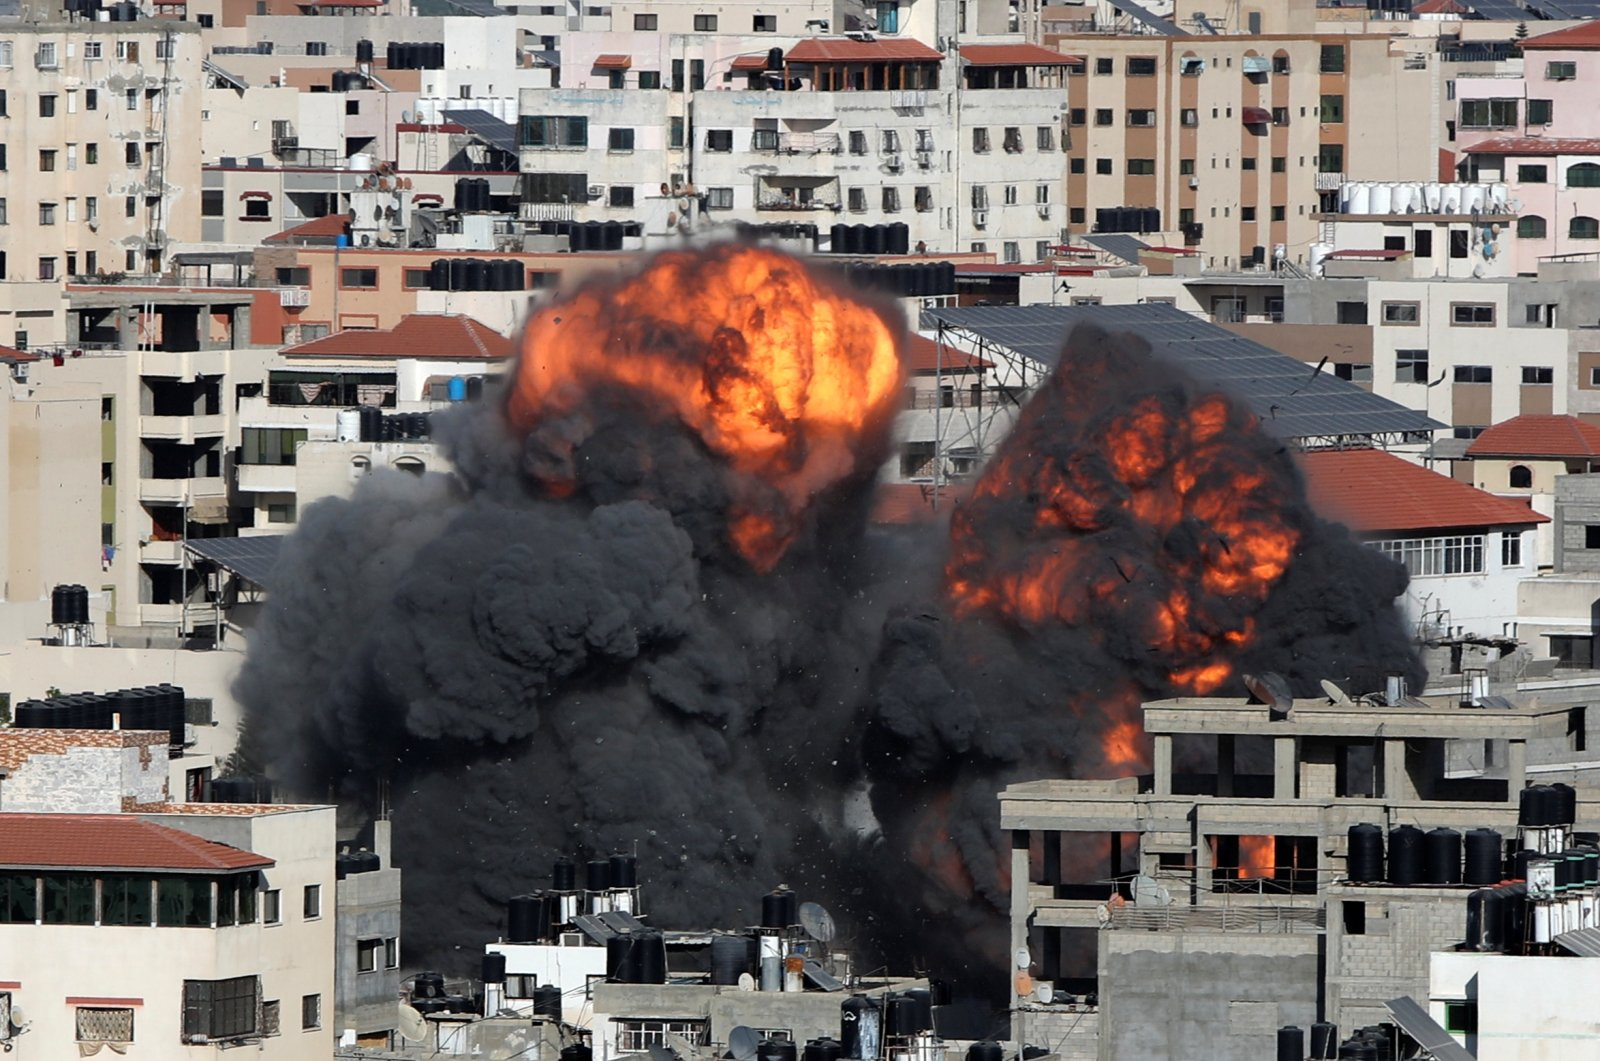 Smoke and flames rise during an Israeli airstrike on Gaza City, Palestine, May 14, 2021. (Reuters Photo)